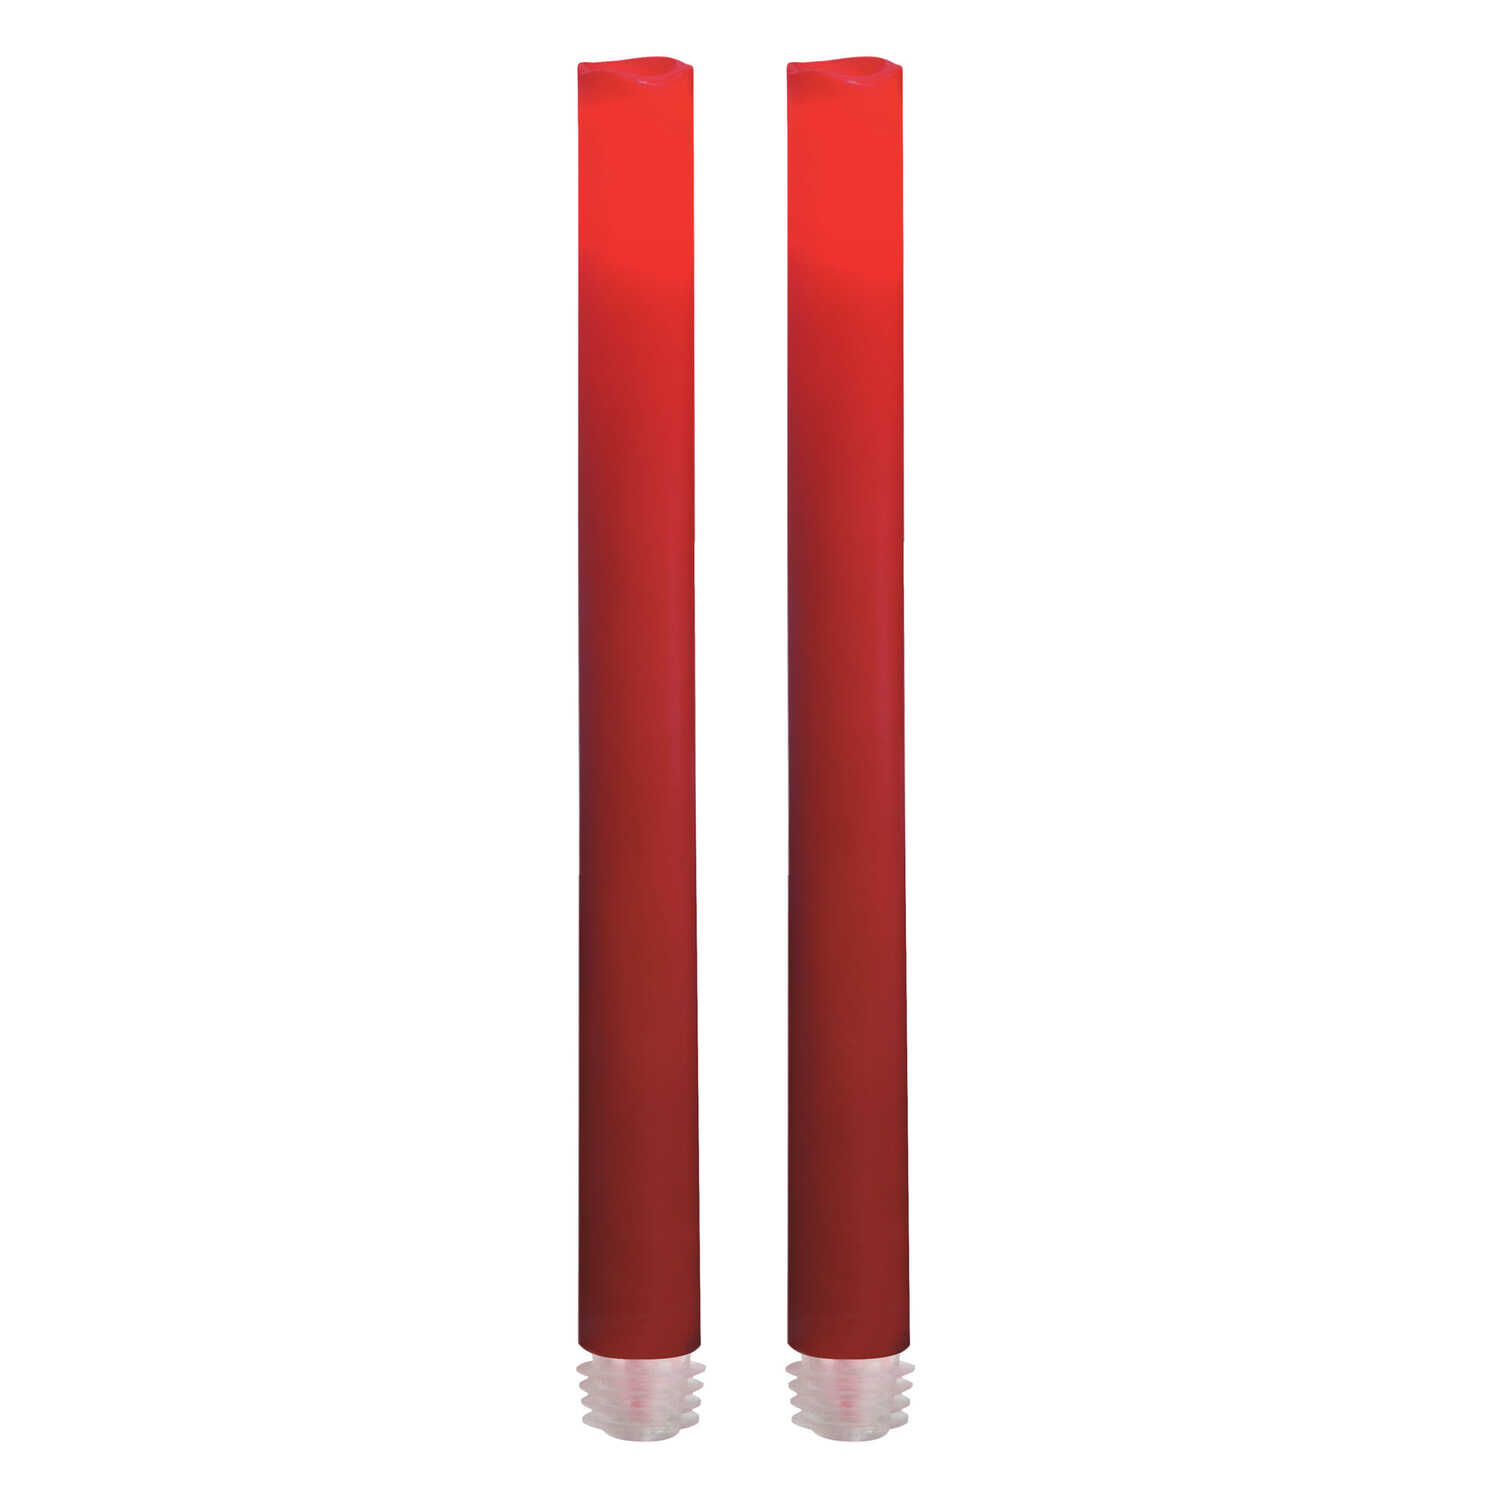 Inglow  No Scent Red  Taper  Candle  9 in. H